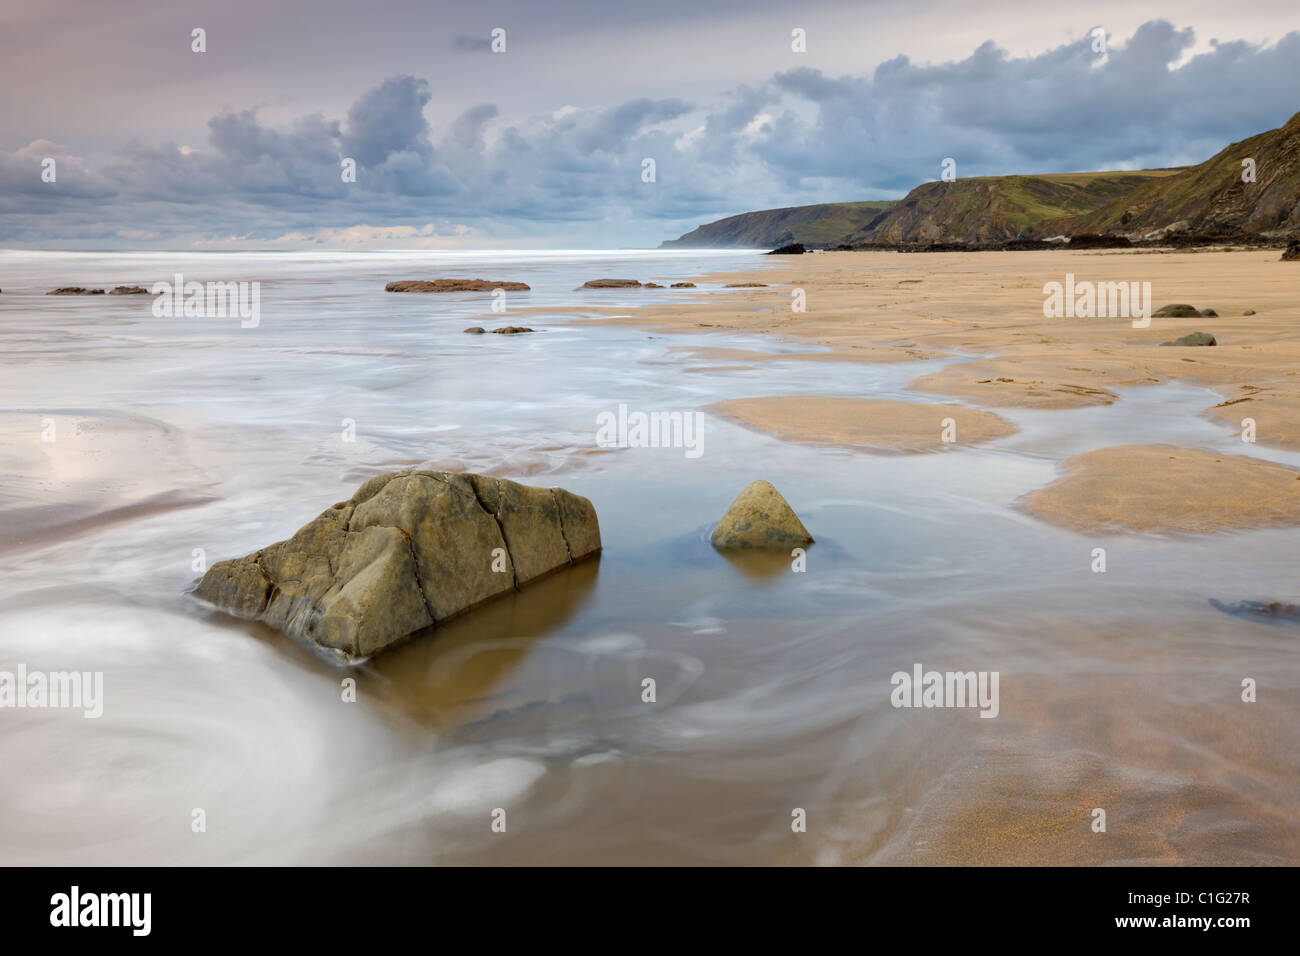 Incoming tide on Sandymouth Beach, Cornwall, England. Autumn (November) 2010. - Stock Image